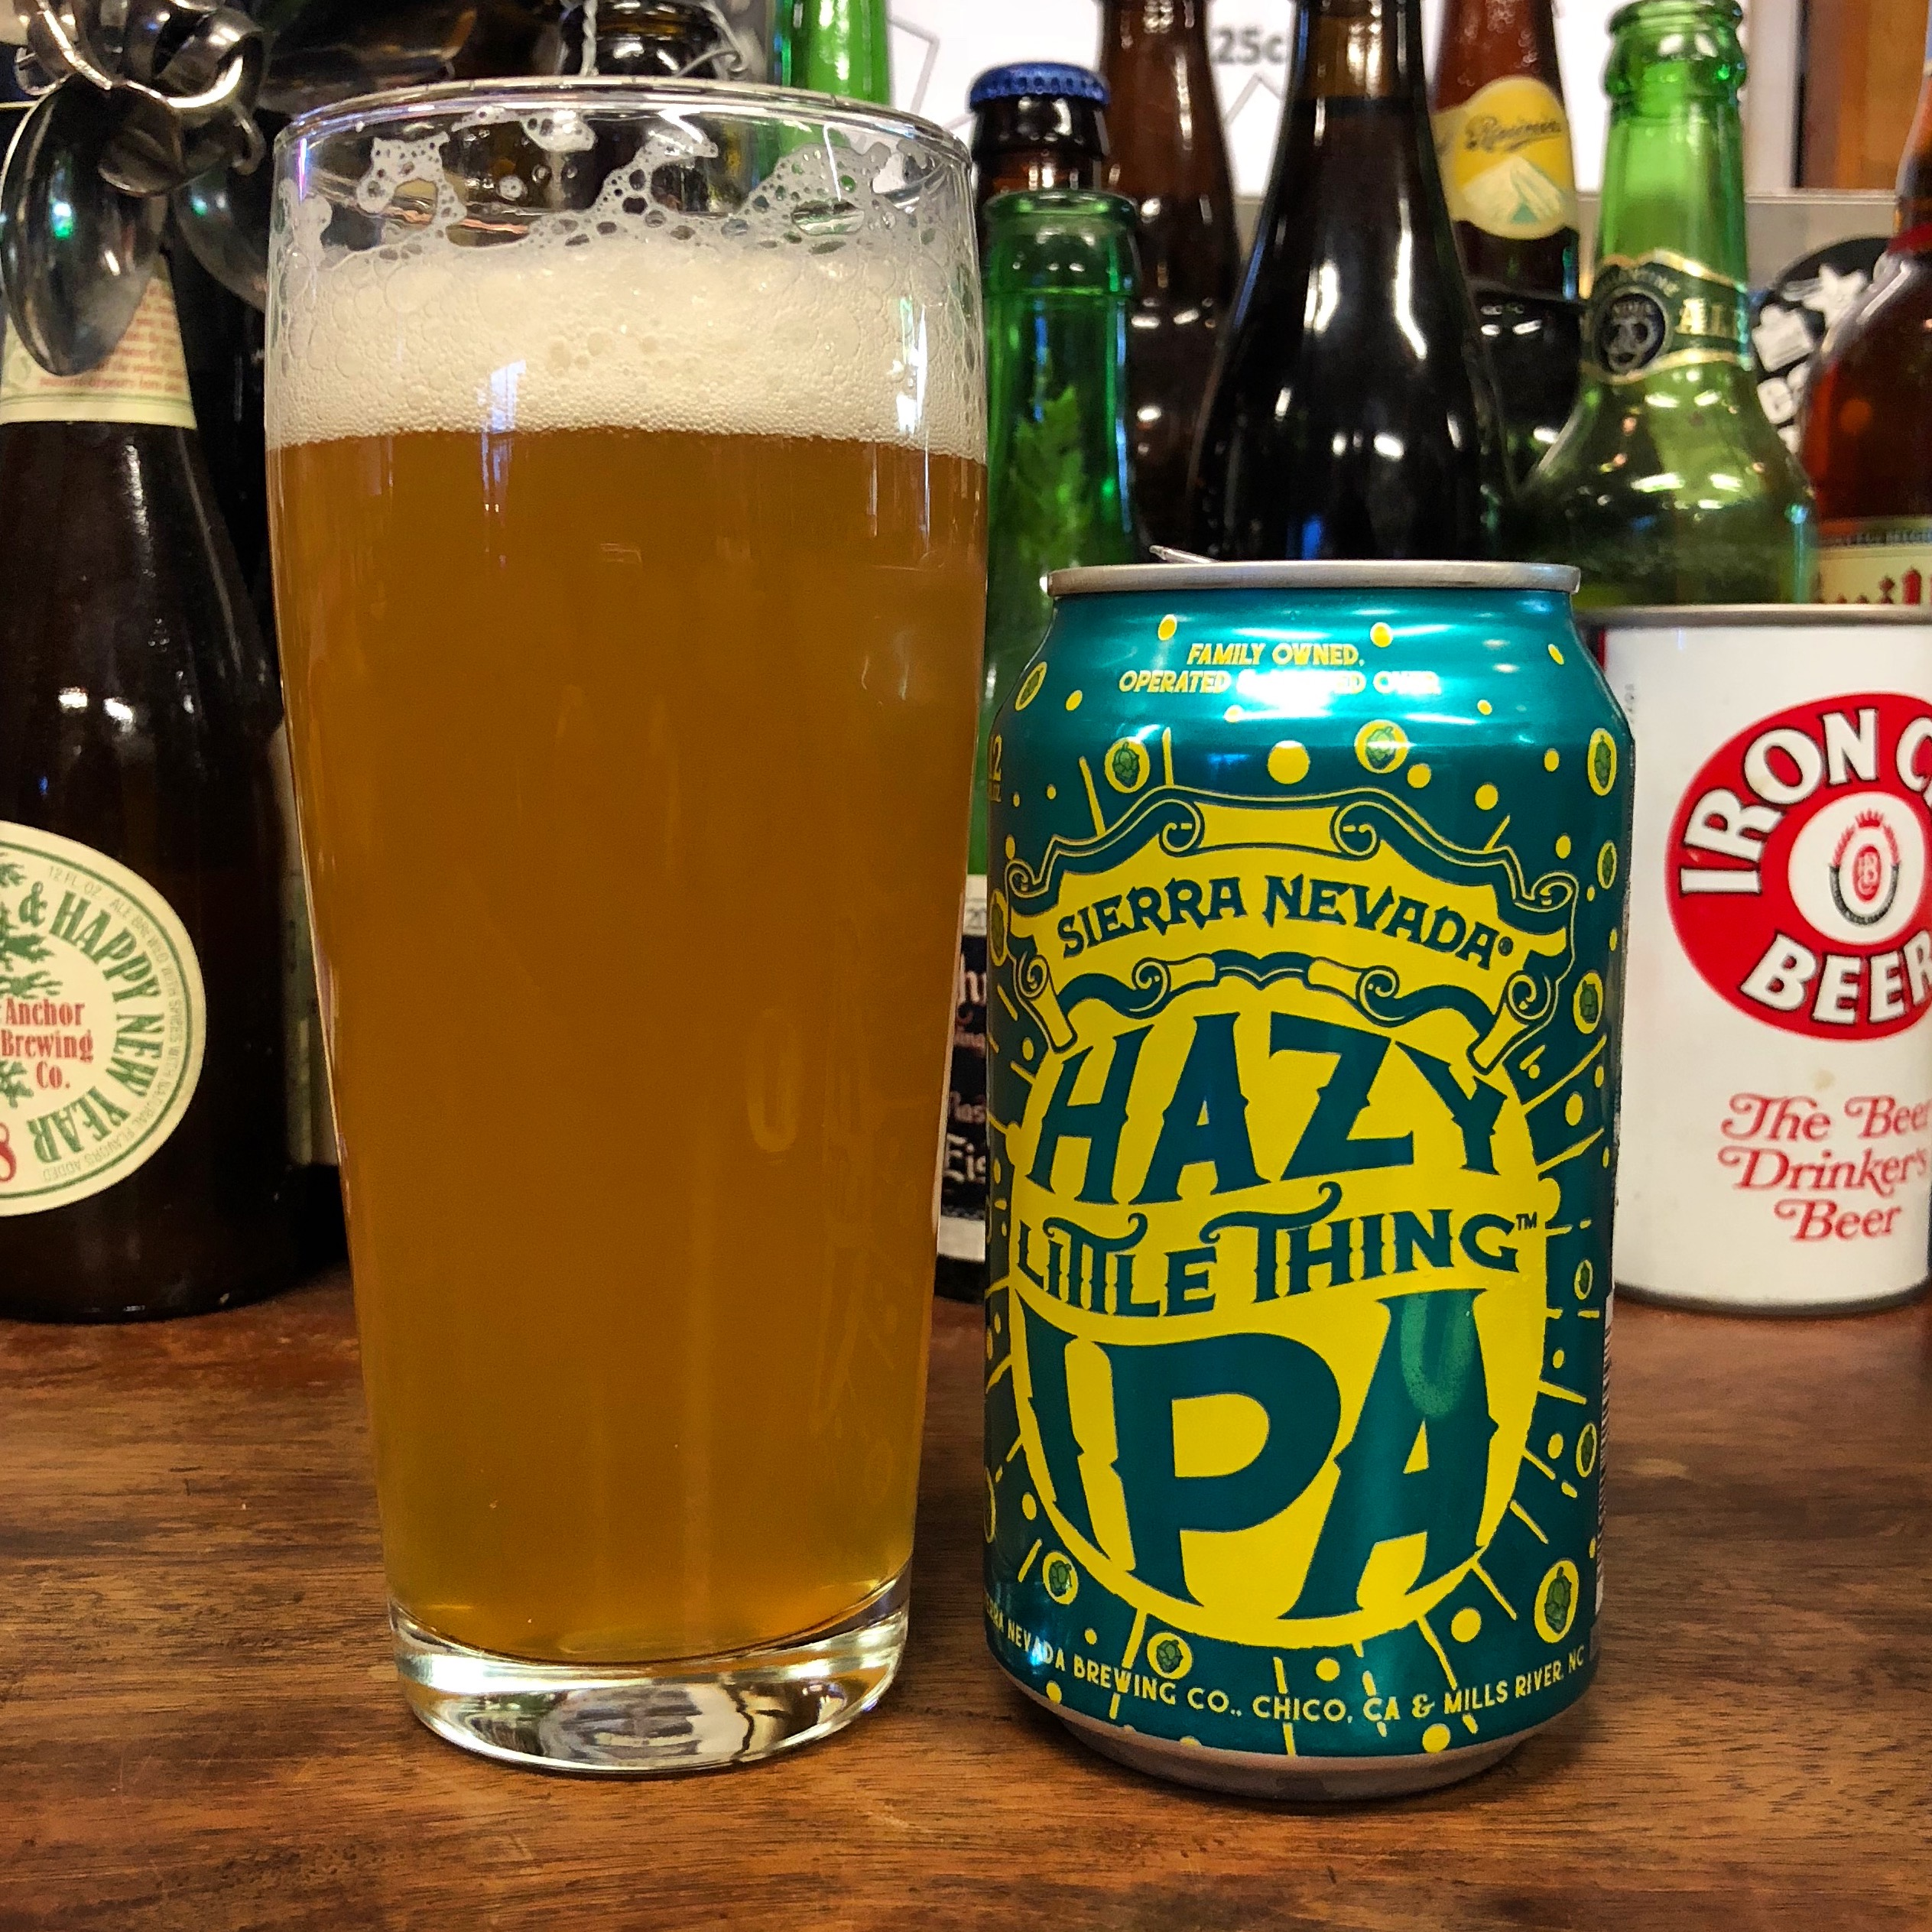 Donald Trump S 1040 Tax Document Reveals Reveals How Much: Sierra Nevada Brewing Releases Hazy Little Thing IPA & Hop